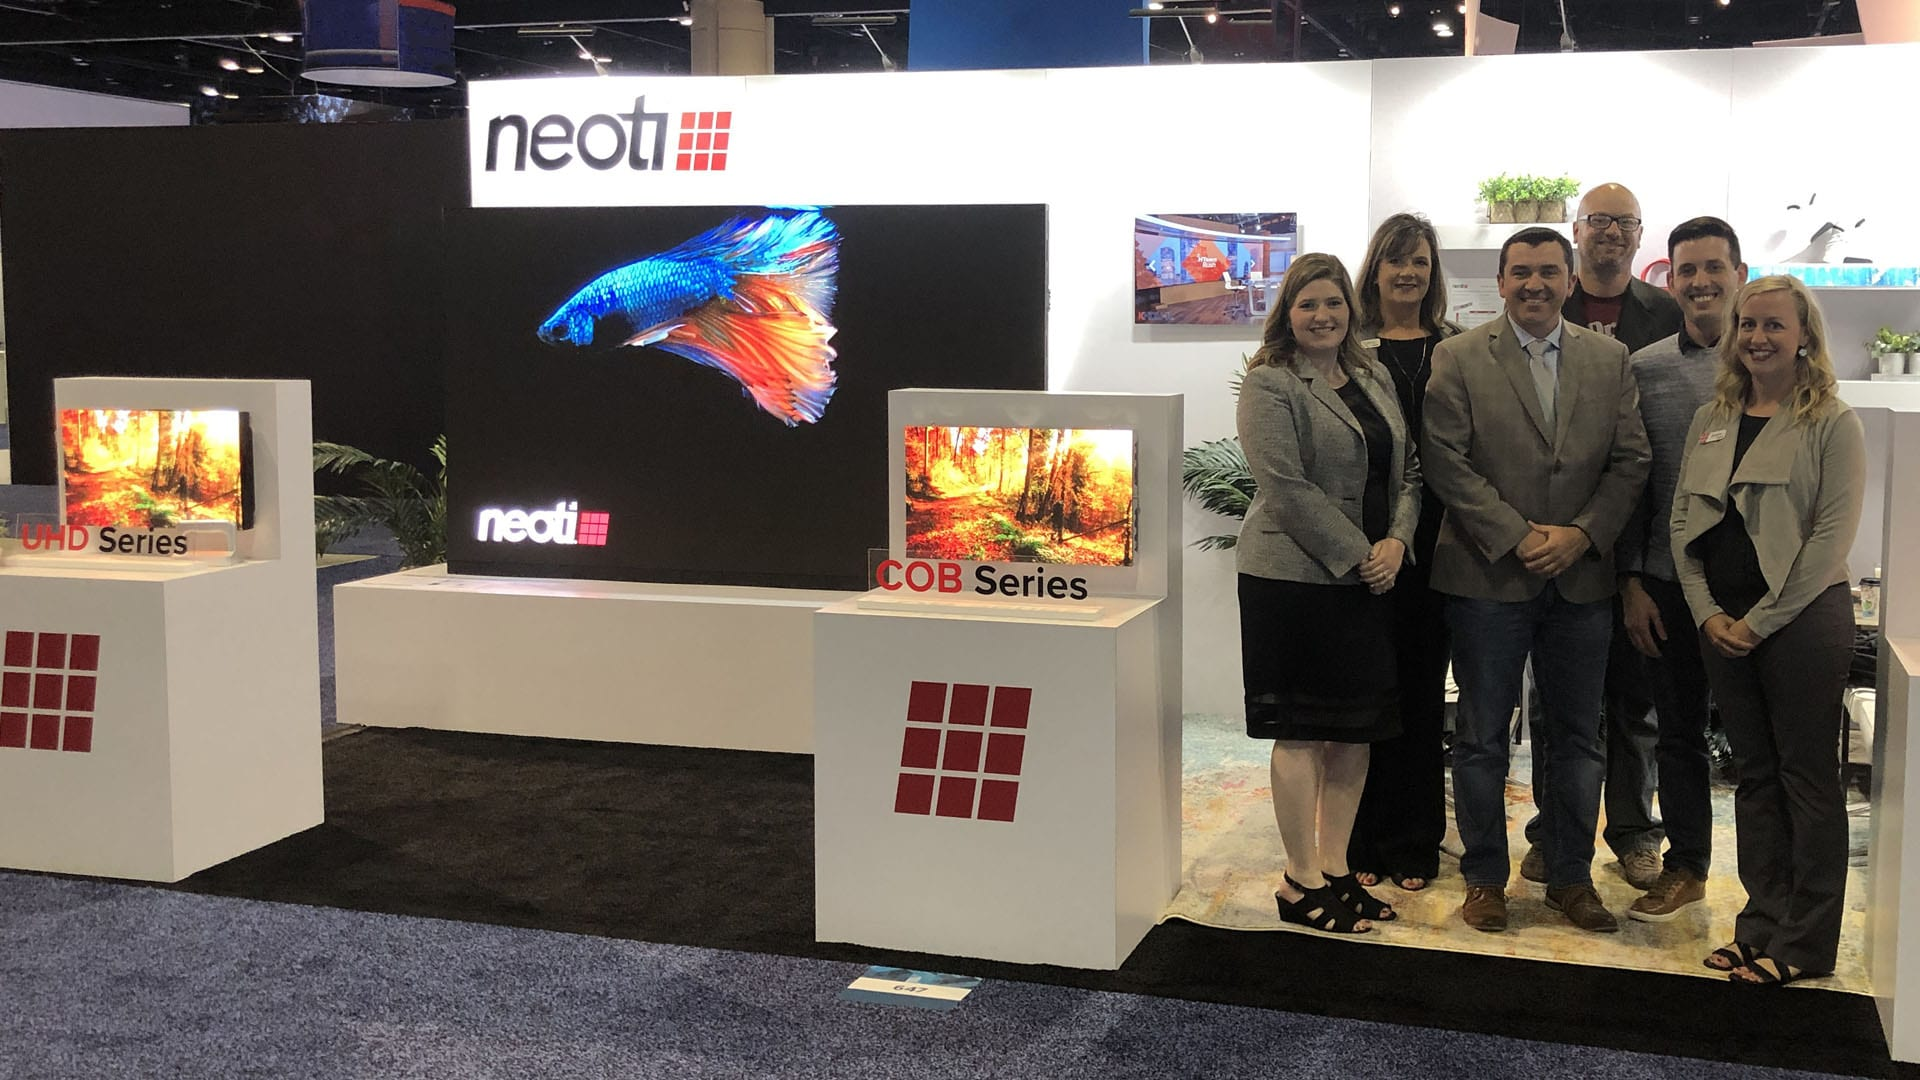 Neoti staff at Infocomm19 in Orlando Florida